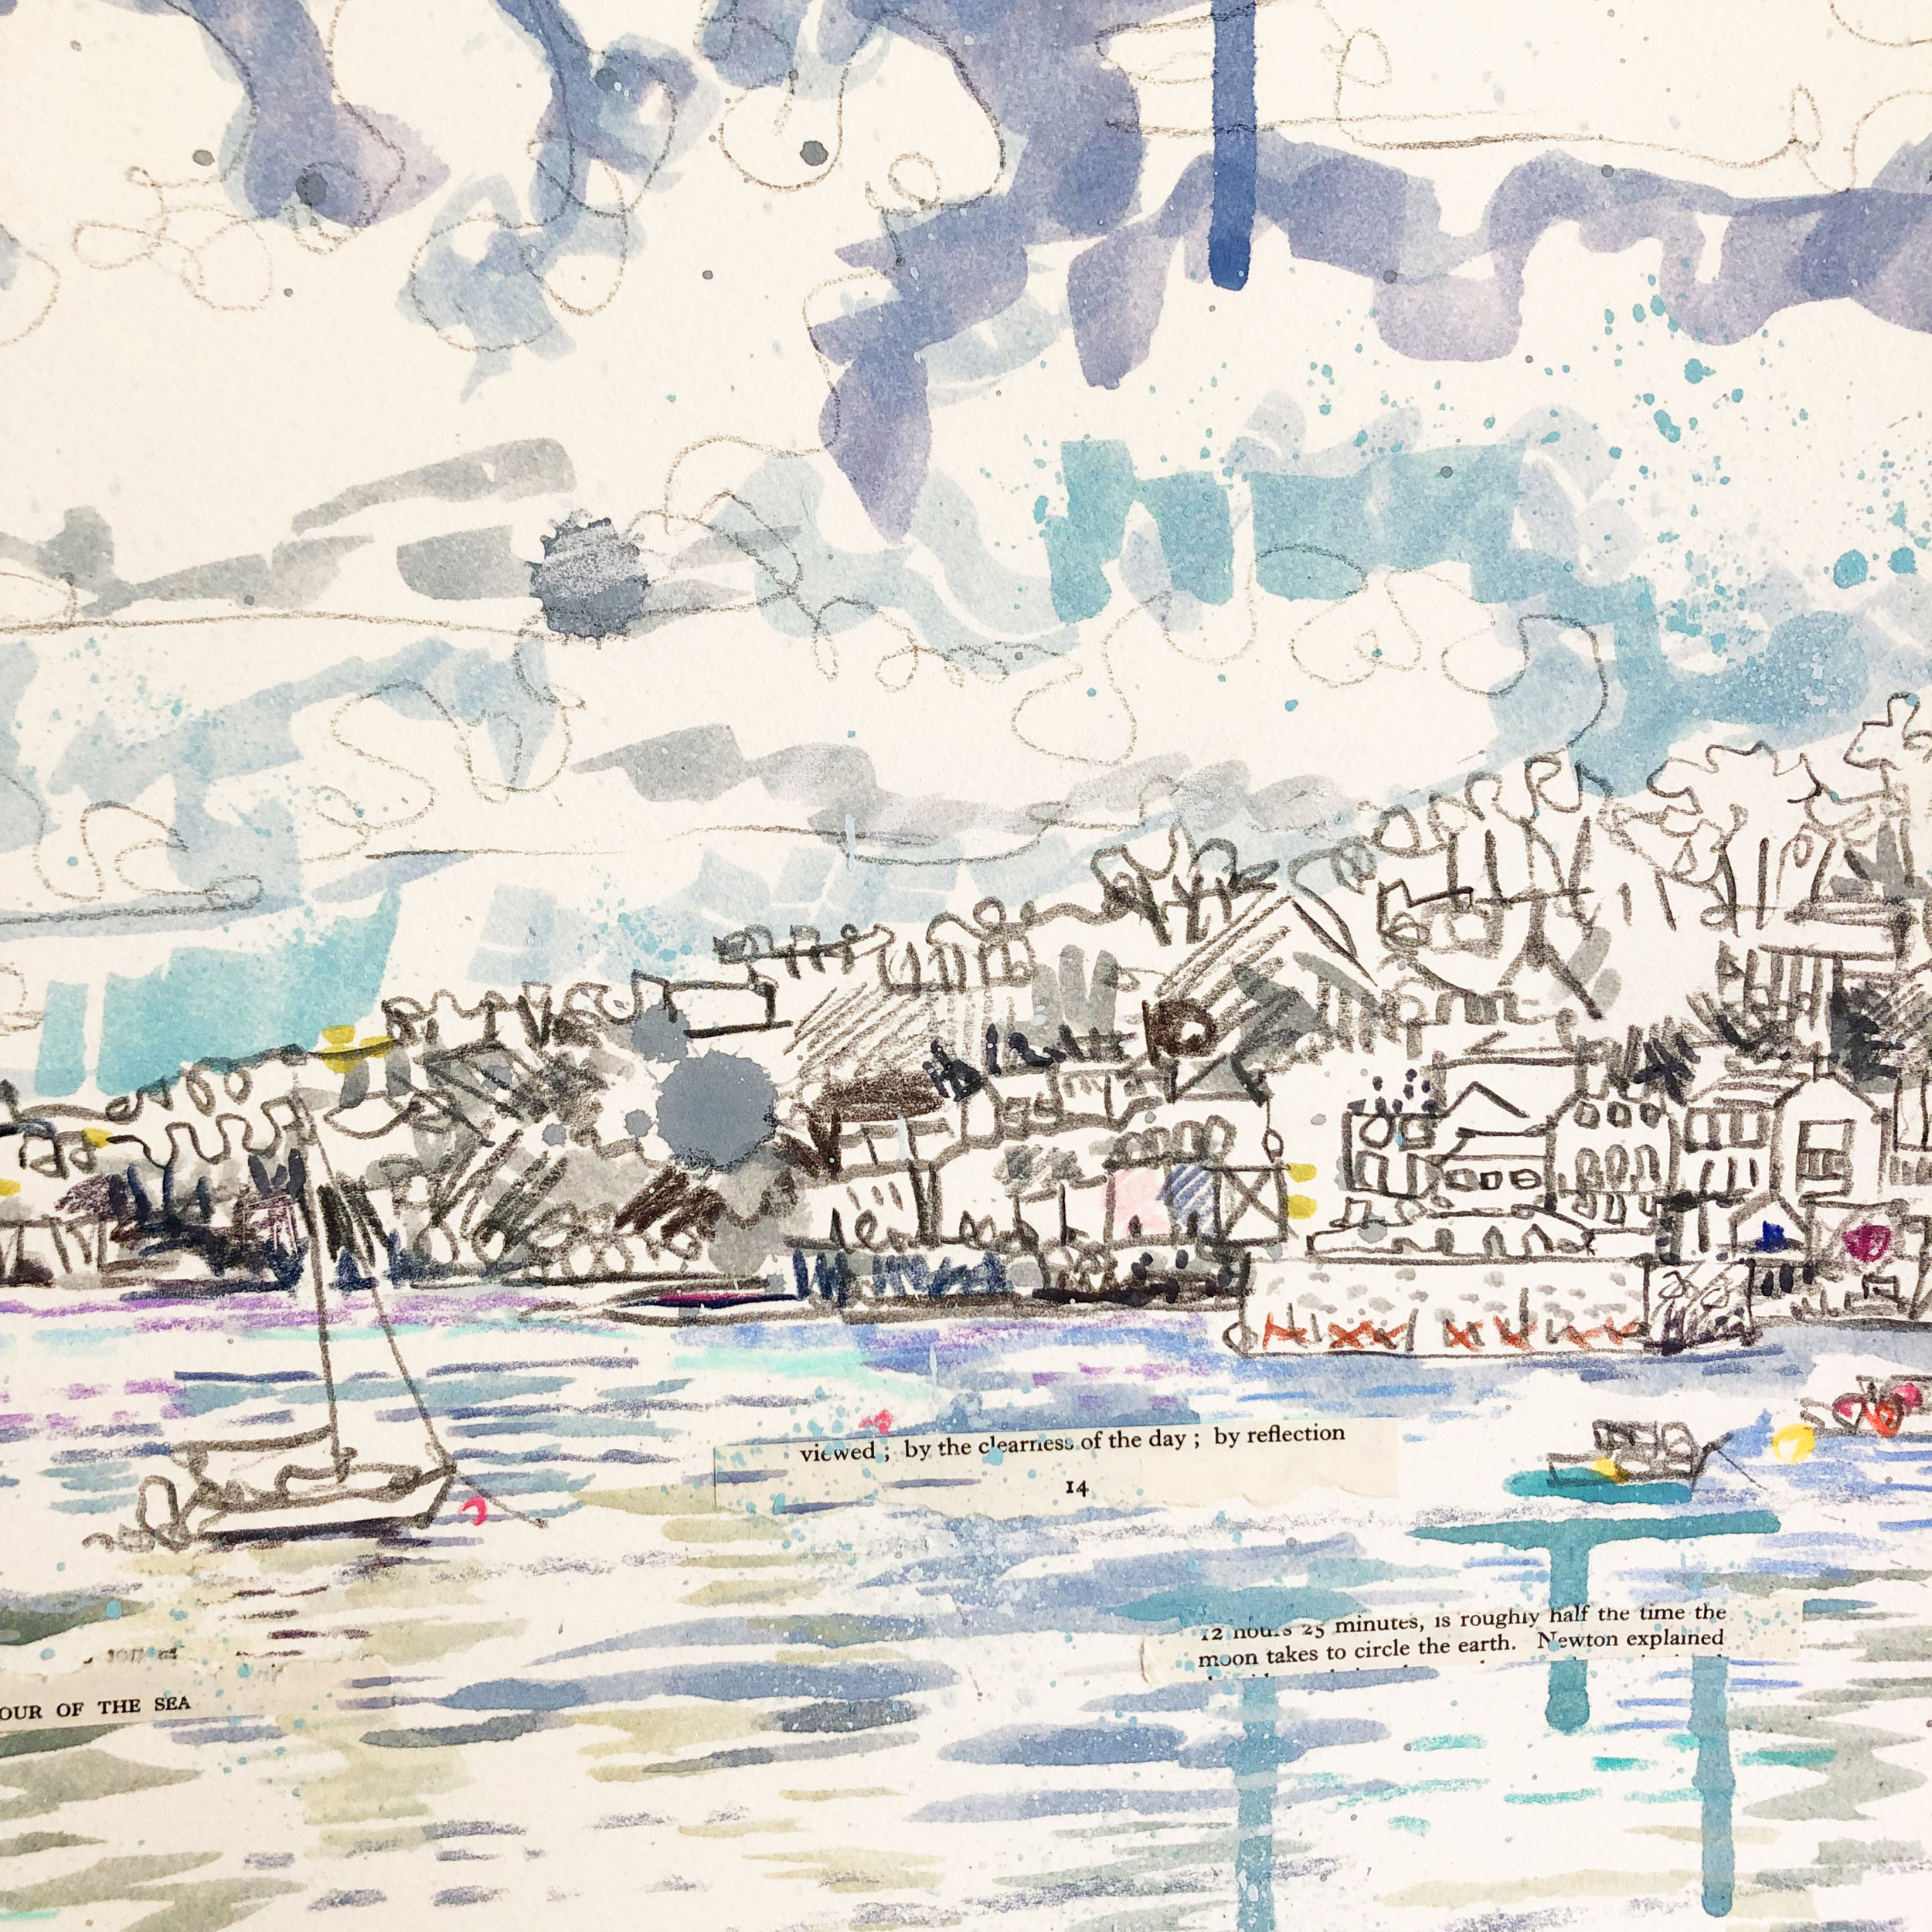 Seascape_St_Mawes_Kirsten_Jones_section2.jpg